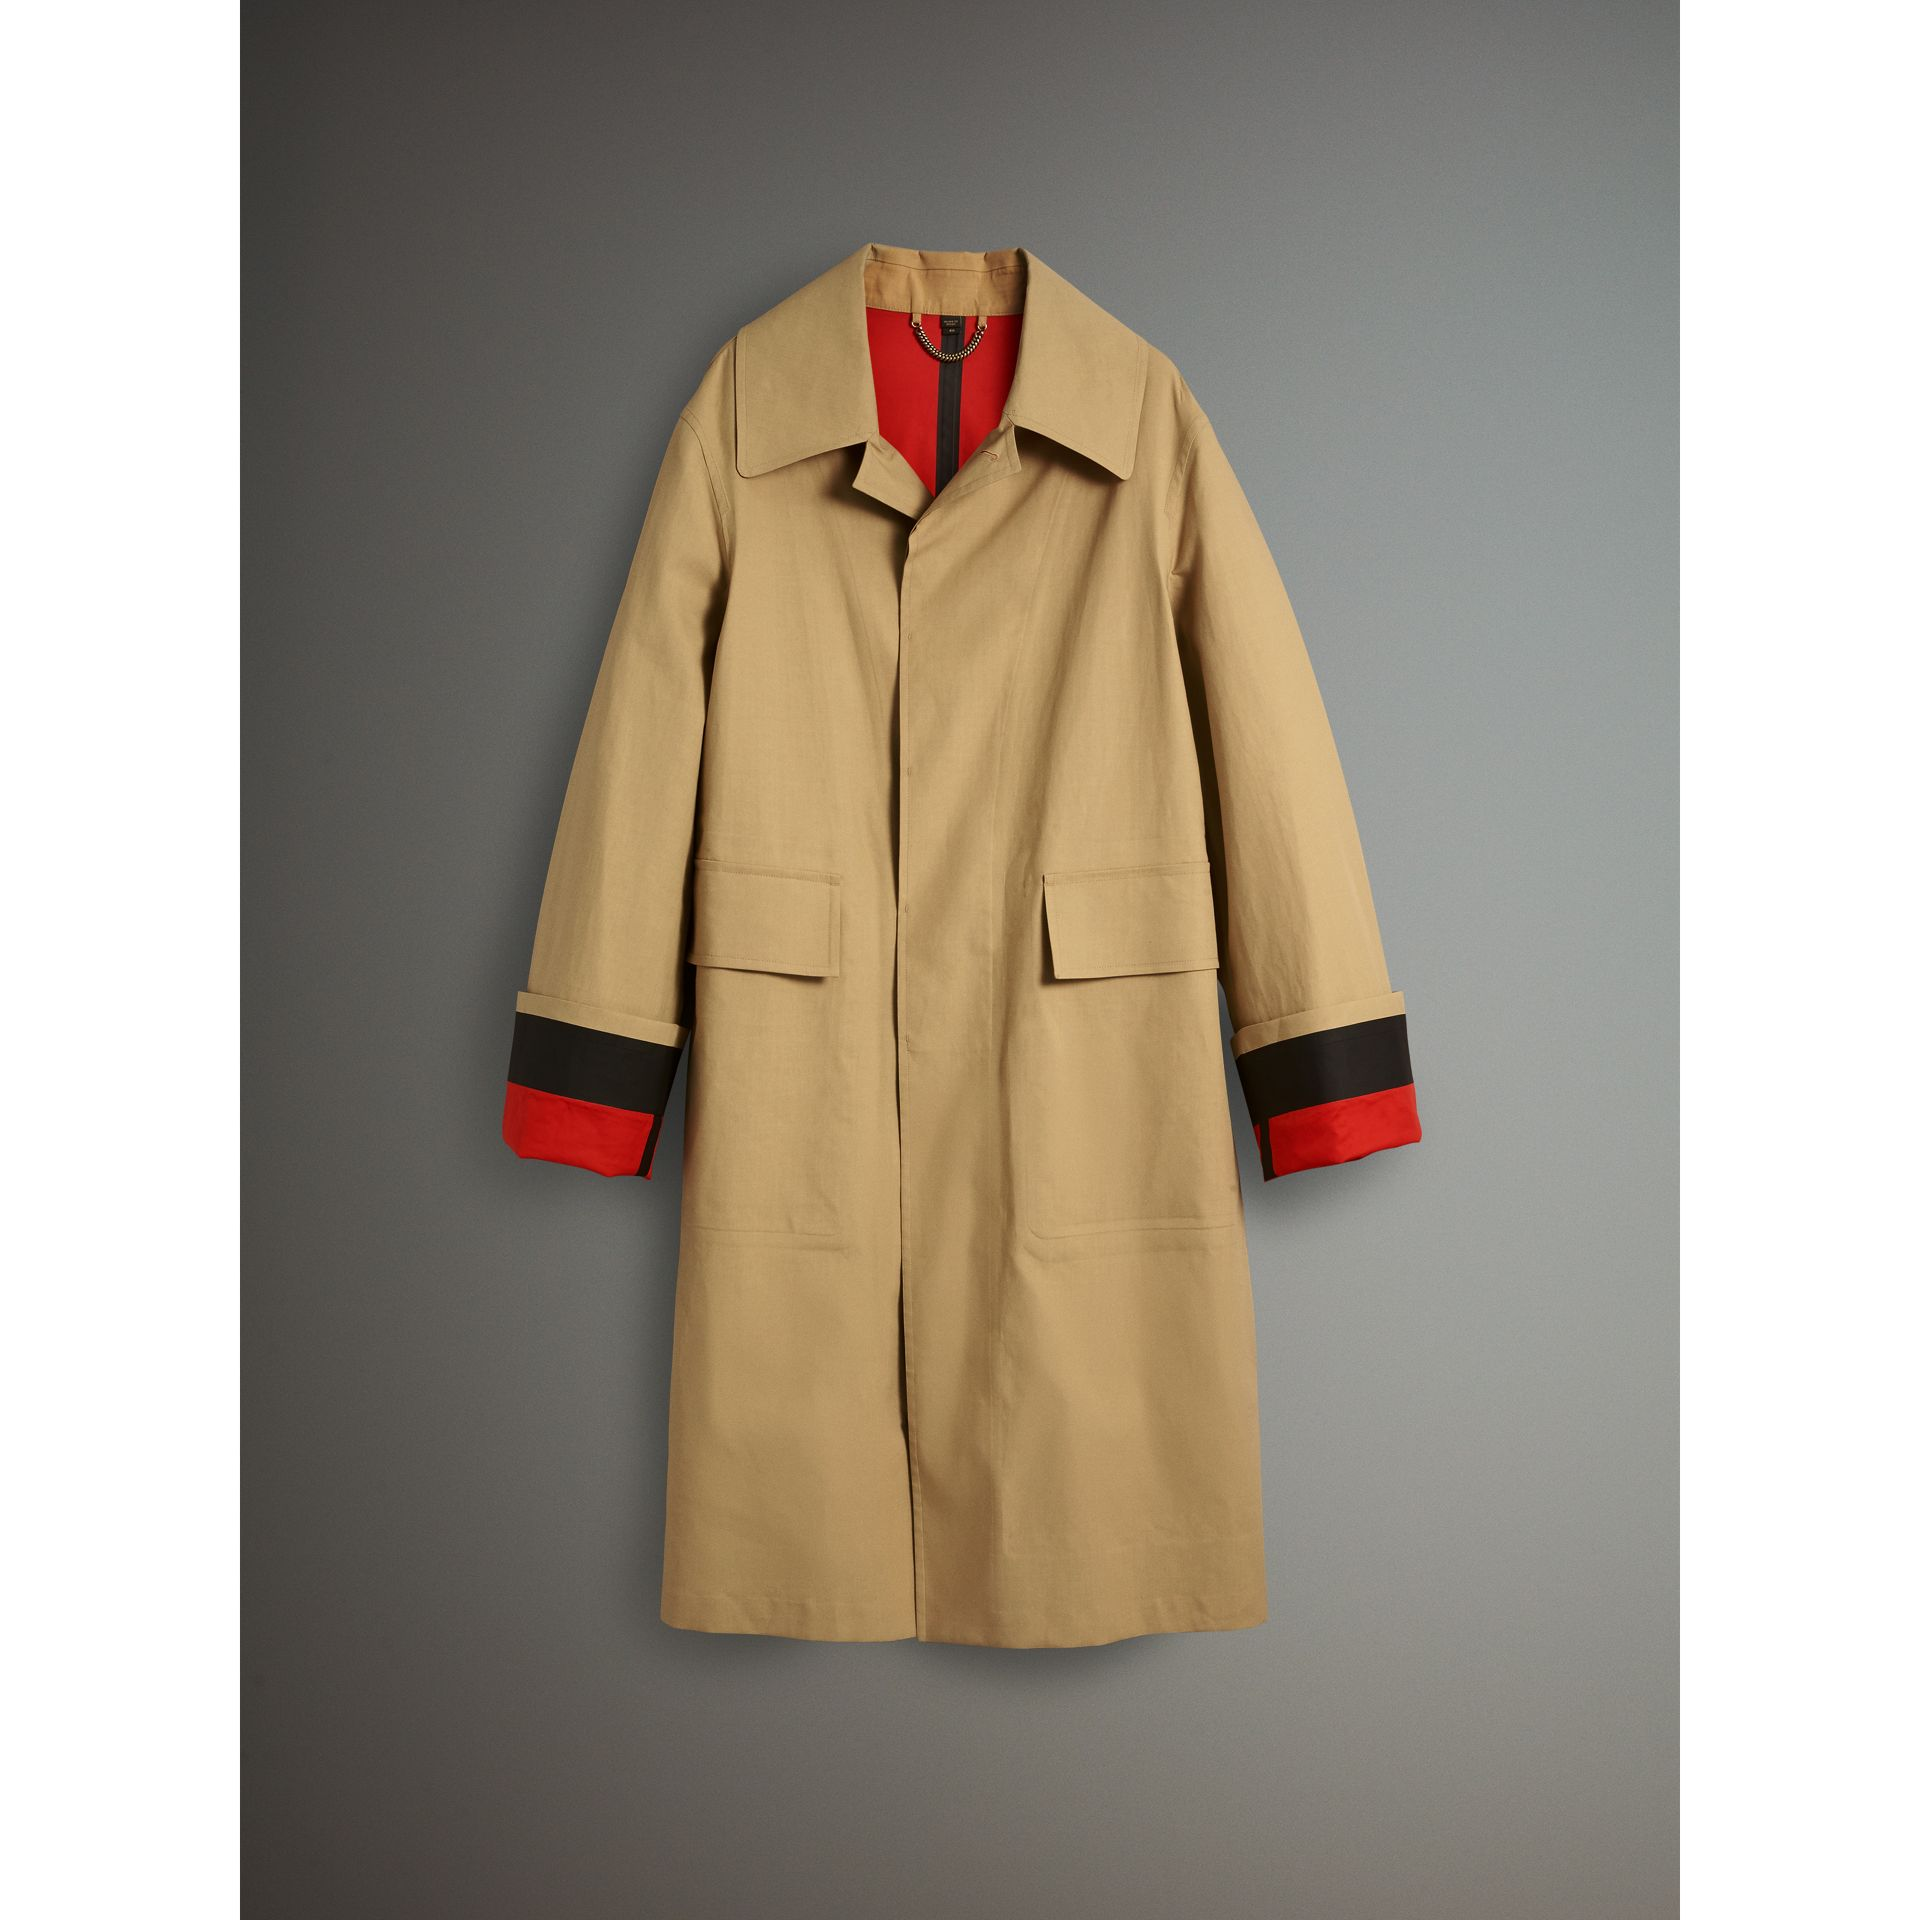 Bonded Cotton Oversized Seam-sealed Car Coat in Beige/red - Men | Burberry United States - gallery image 3